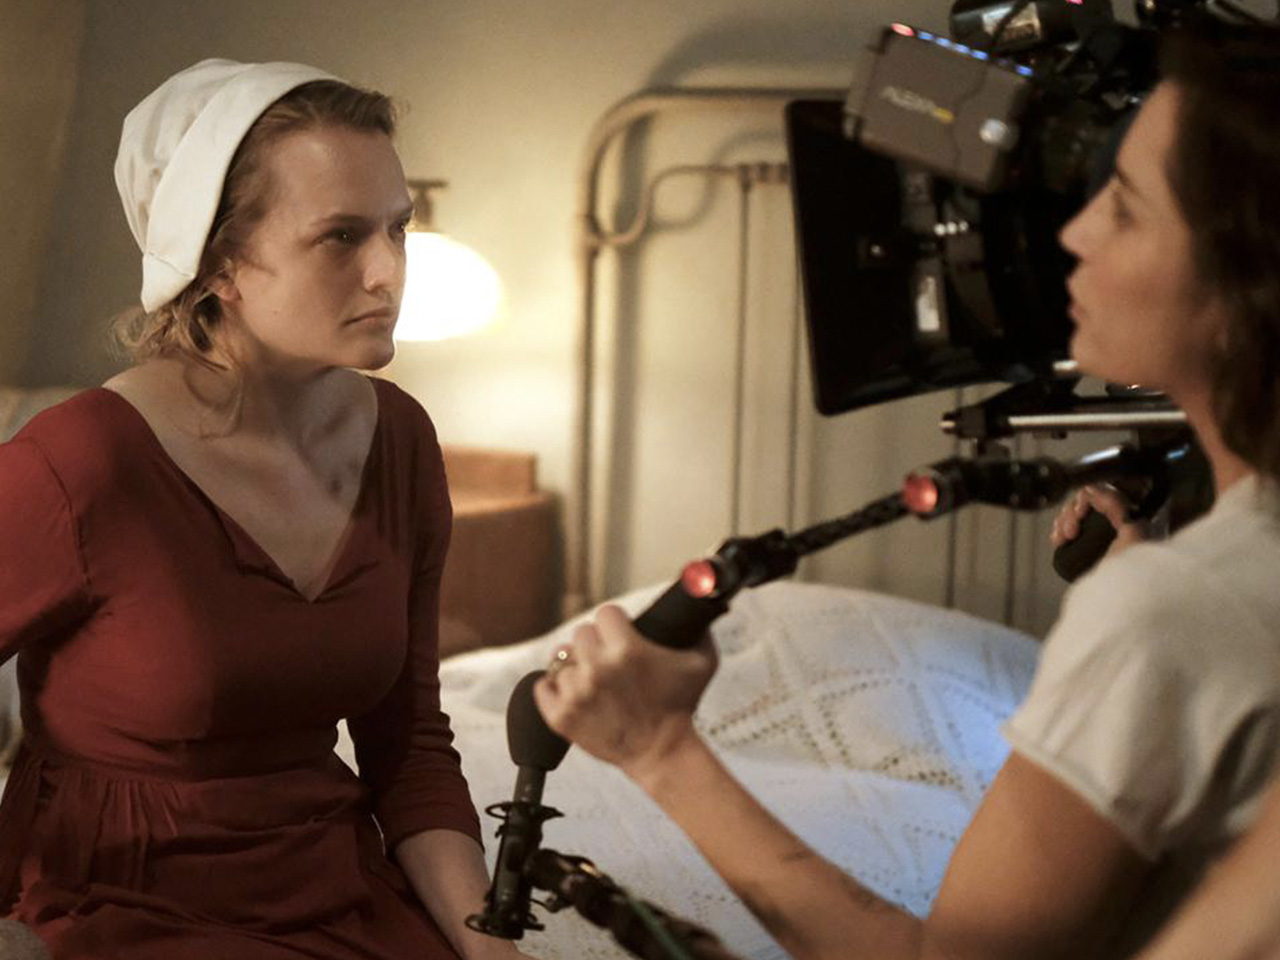 SHAPE camera support rig - thehandmaidstale_bts_hulu